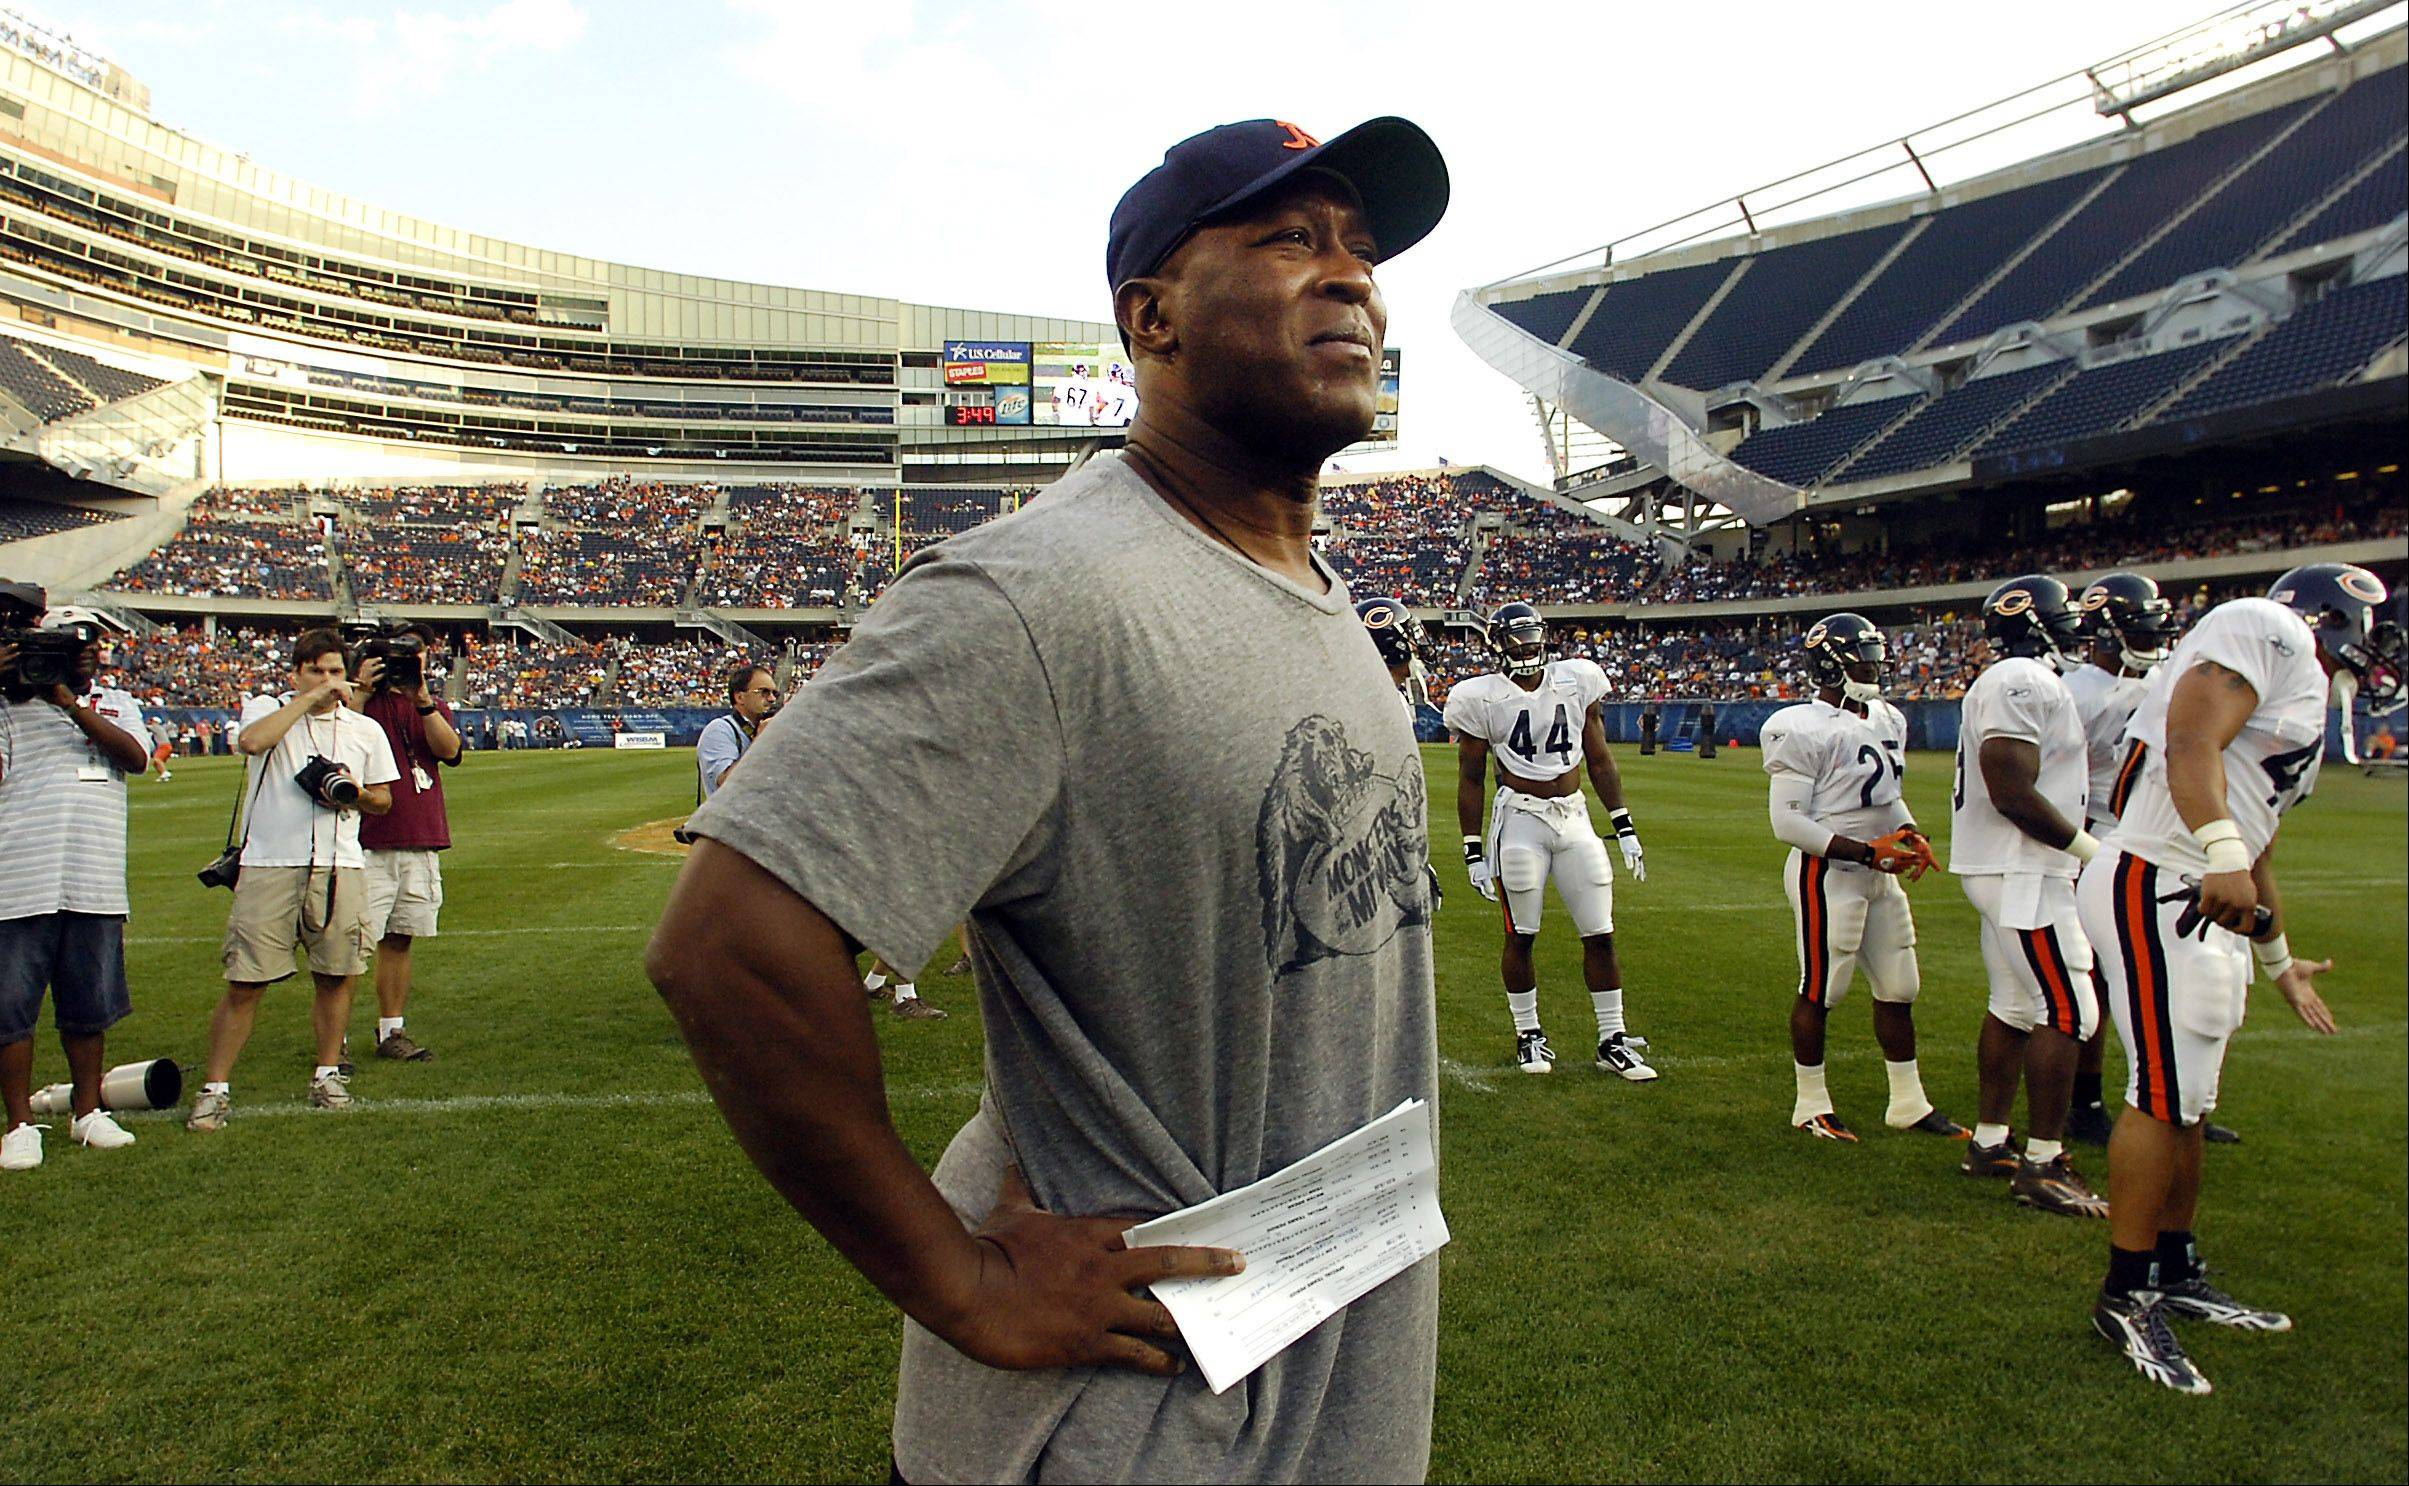 Lovie Smith has had plenty of things go his way in his nine seasons as Bears head coach. A victory Sunday over the red-hot Packers would help his cause if he wants to stick around for a 10th season in Chicago.